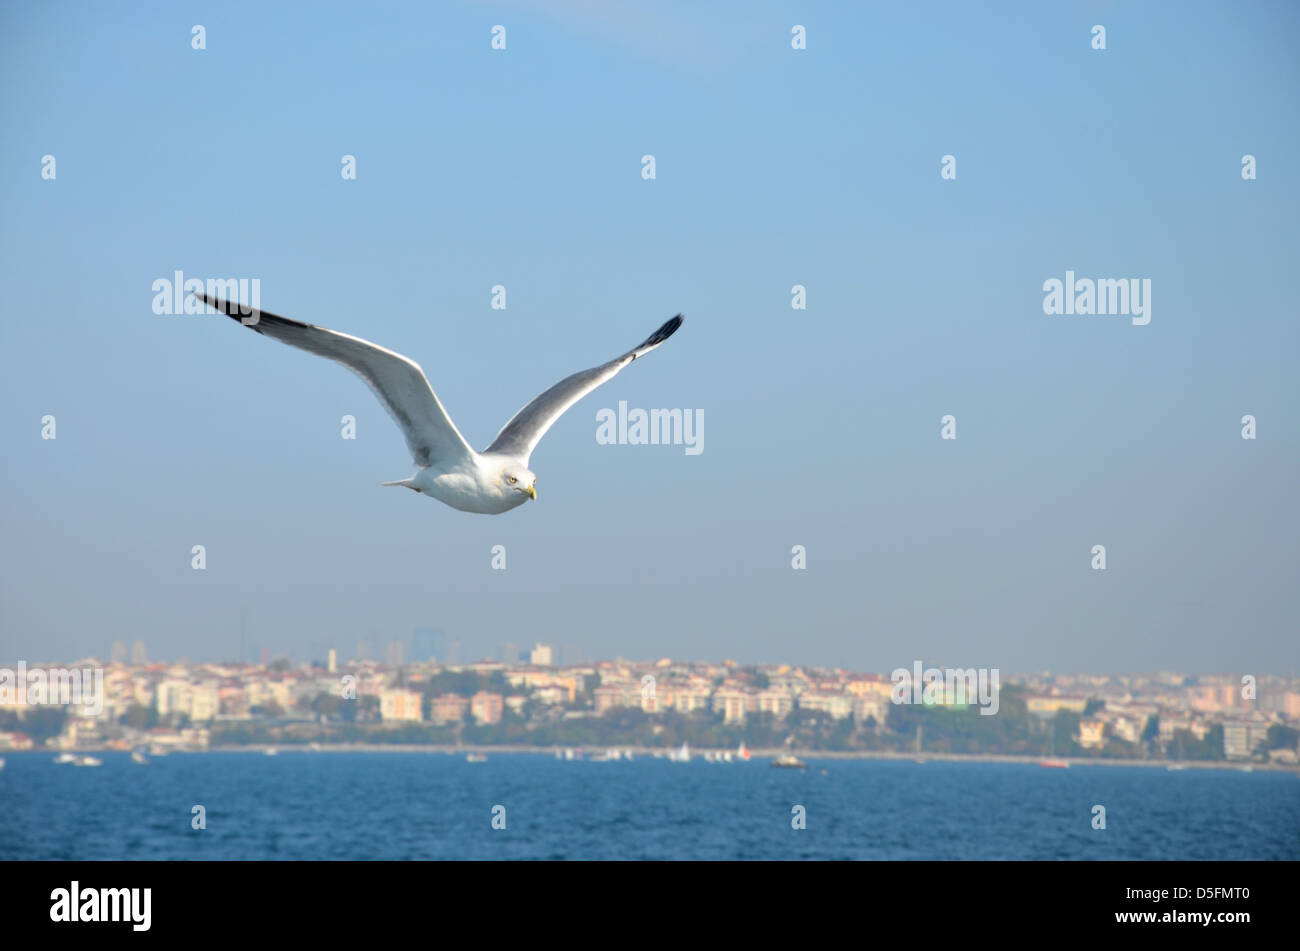 Seagull soaring in breeze - Stock Image